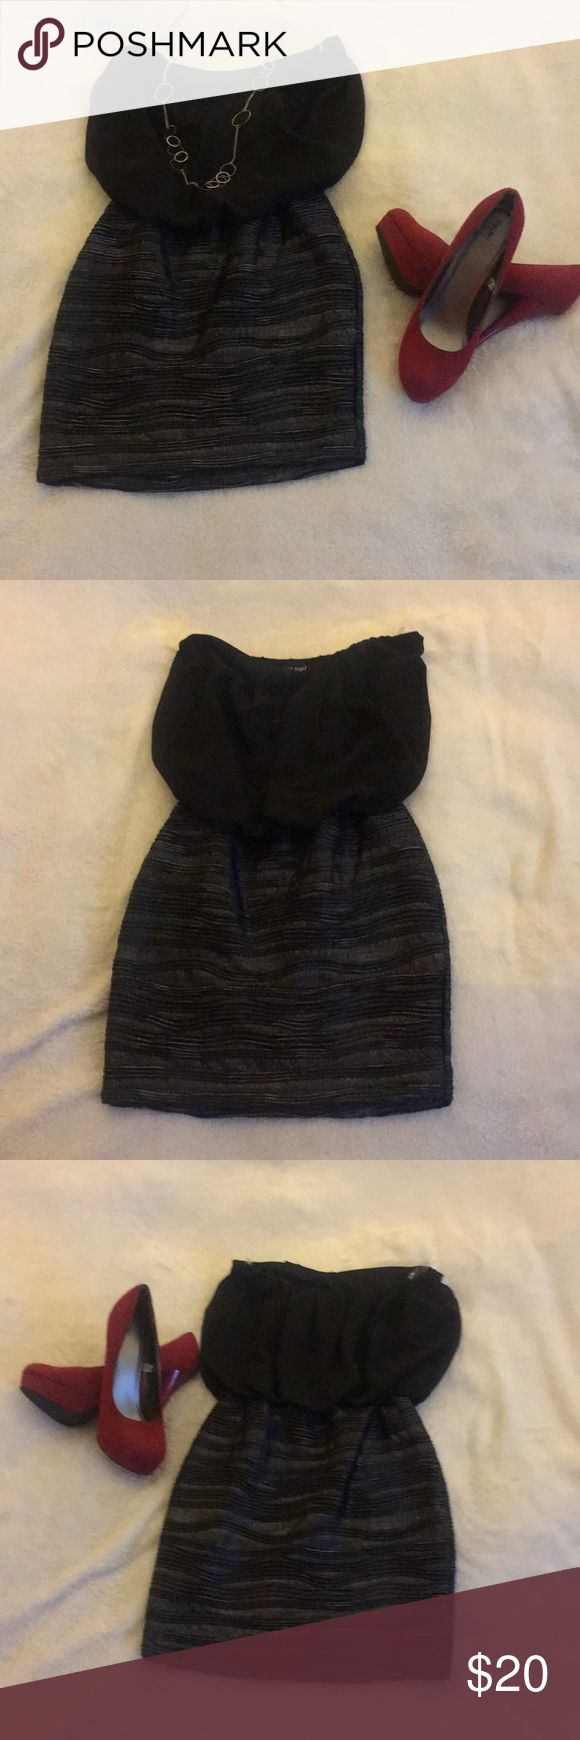 NWT!! Wet Seal black and metallic mini dress!! New With Tags Wet Seal black and metallic mini strapless dress! Great for a night out! Perfect addition to your Vegas outfits! Add some colored heals and a fun necklace and you will turn heads! Wet Seal Dresses Mini